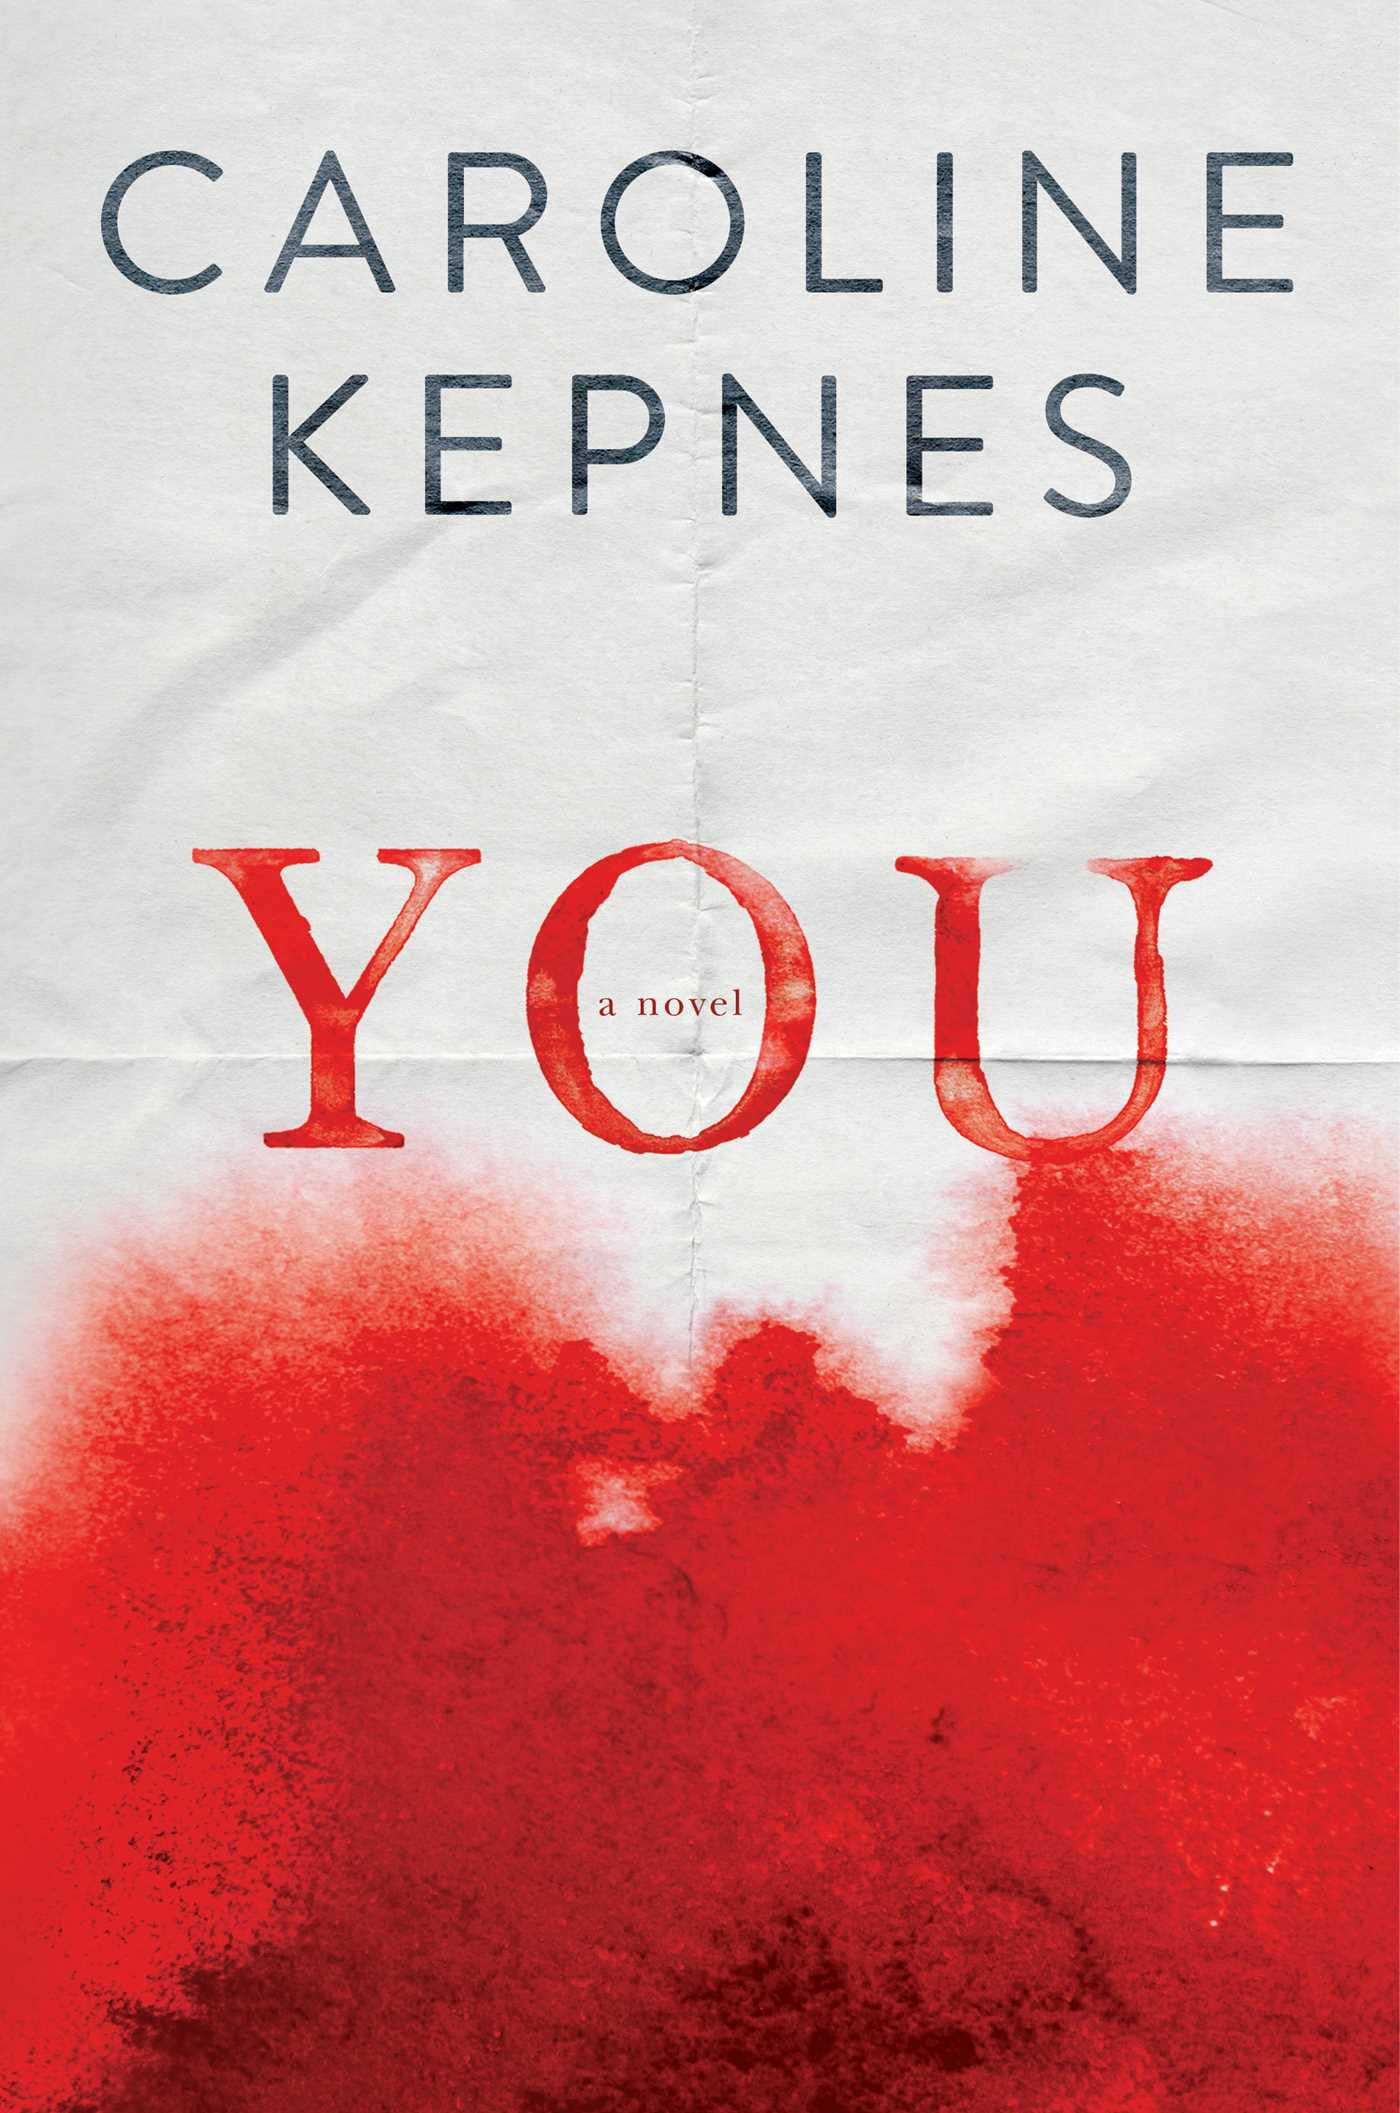 Caroline Kepnes book cover